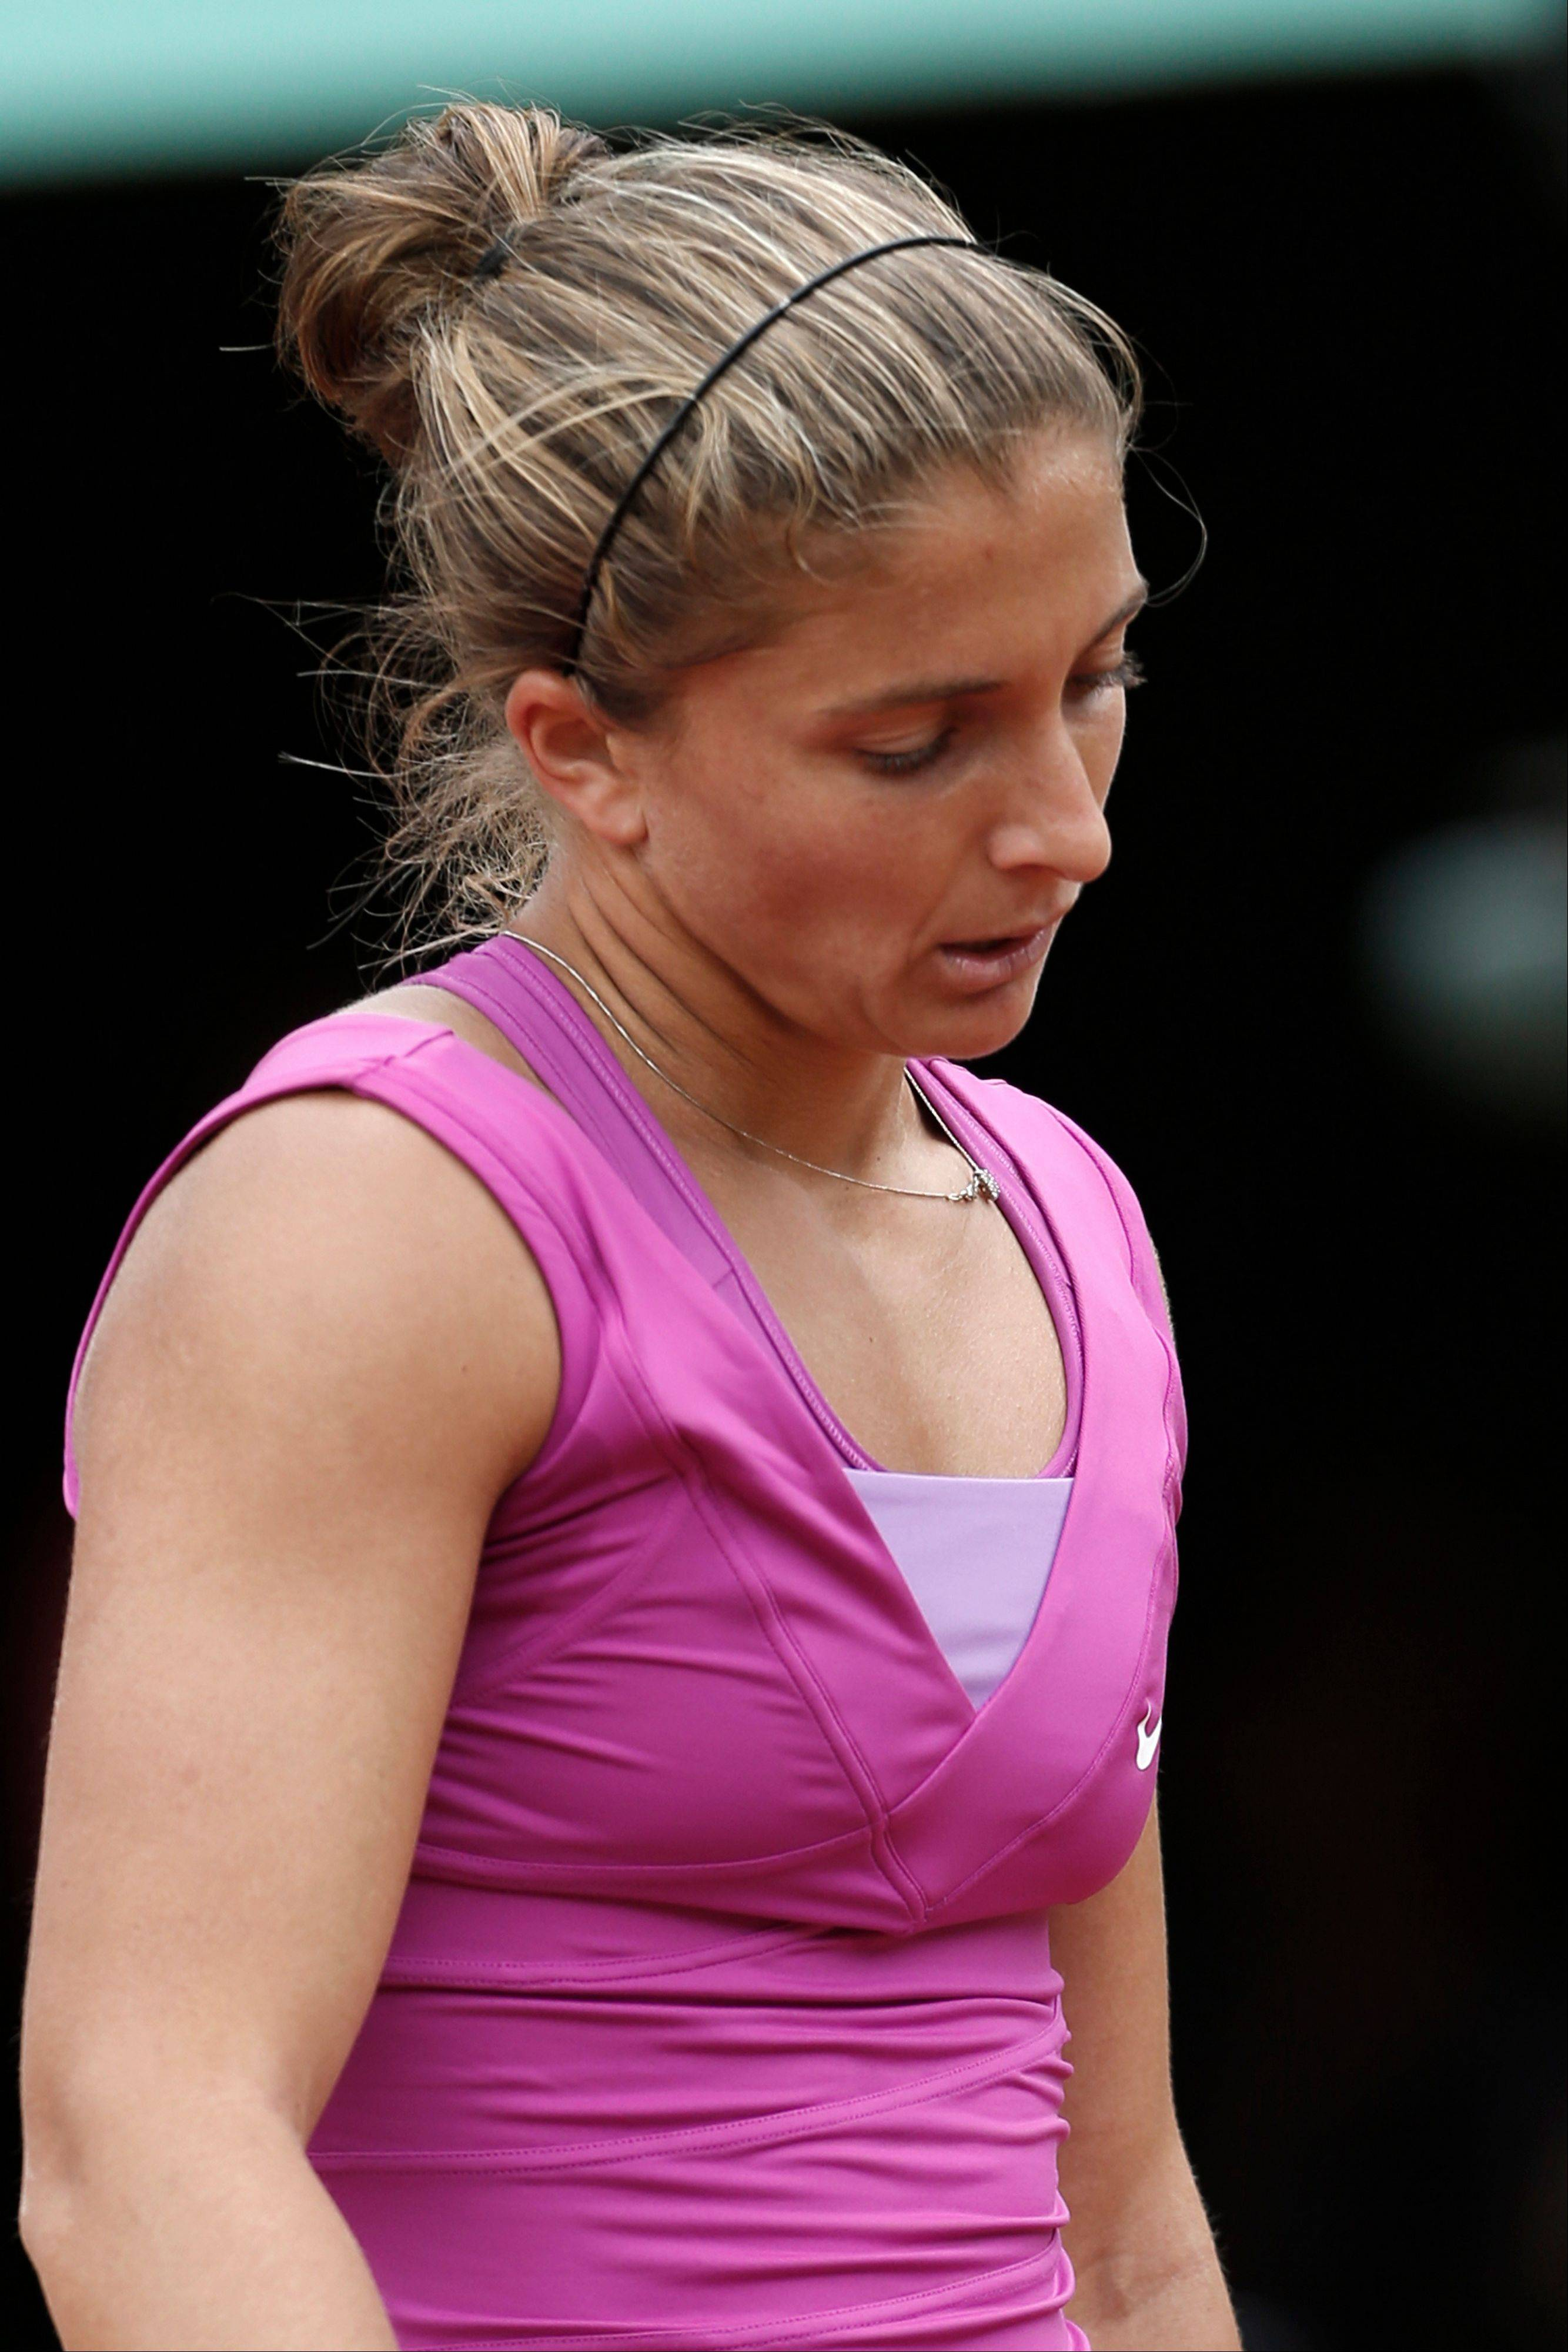 Sara Errani closes her eyes after missing a return.